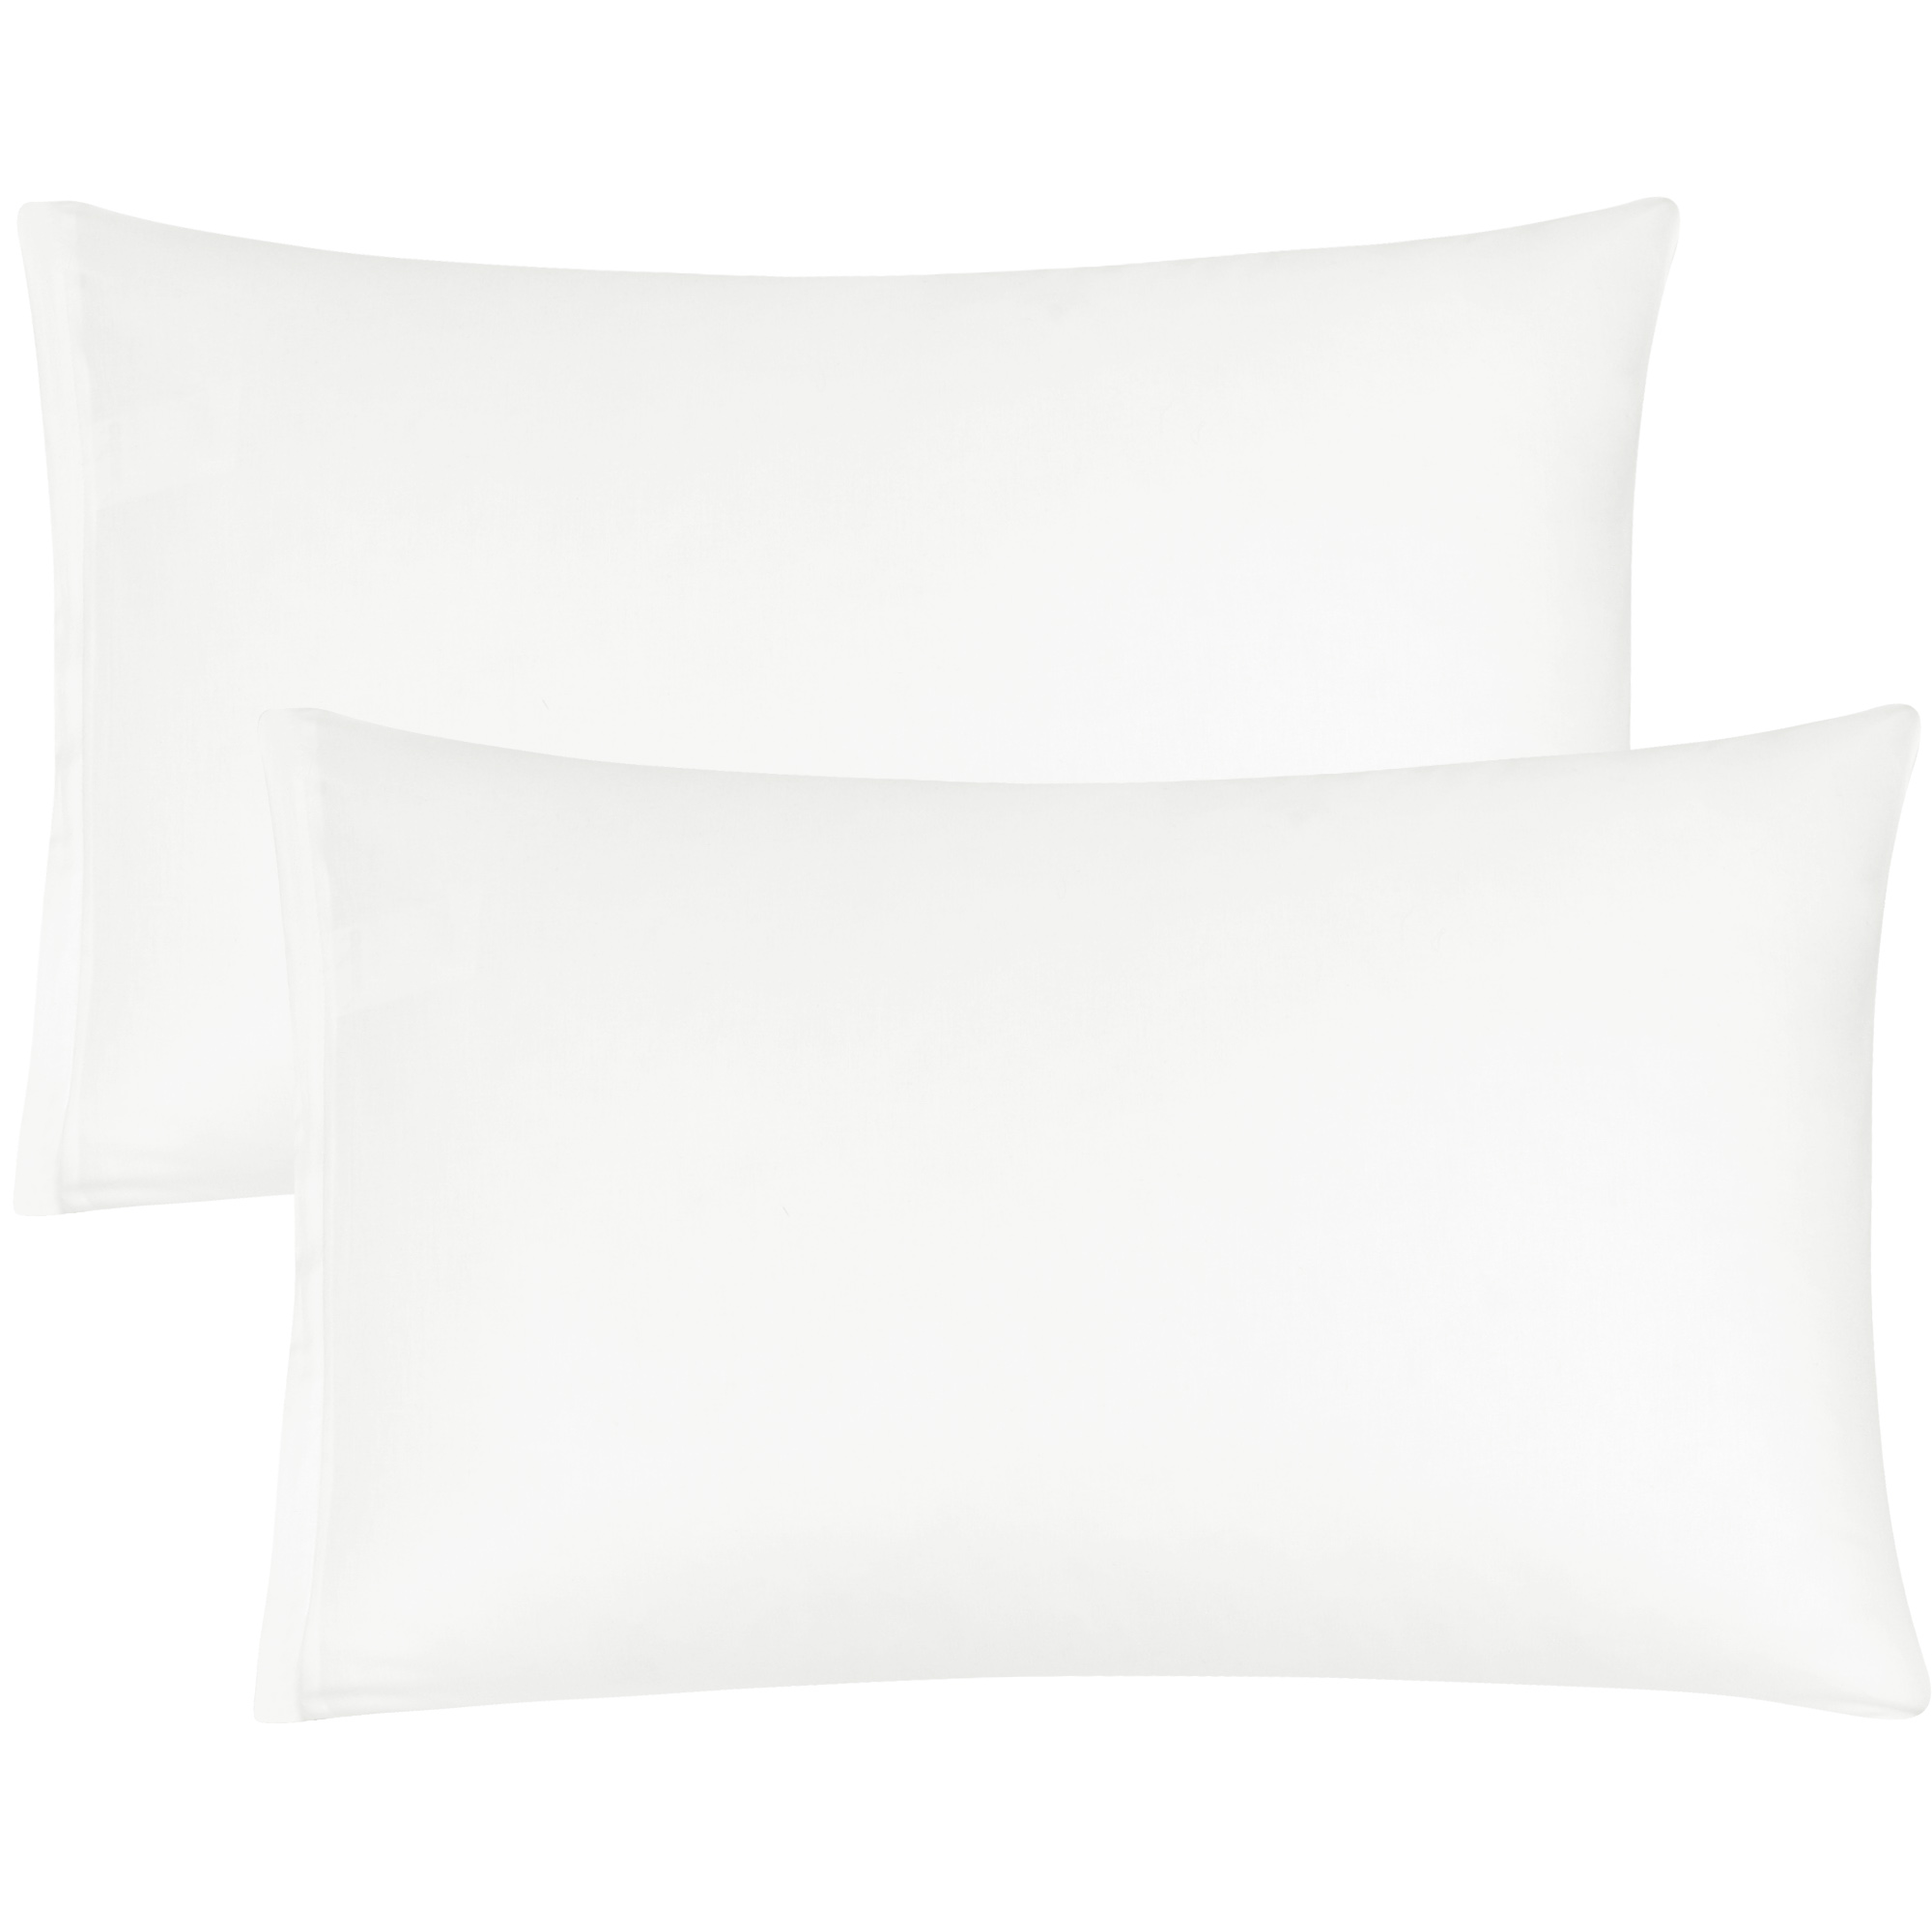 Zippered Cases Pillowcases Covers Egyptian Cotton 2-Pack (20 x 30 Inch, White)